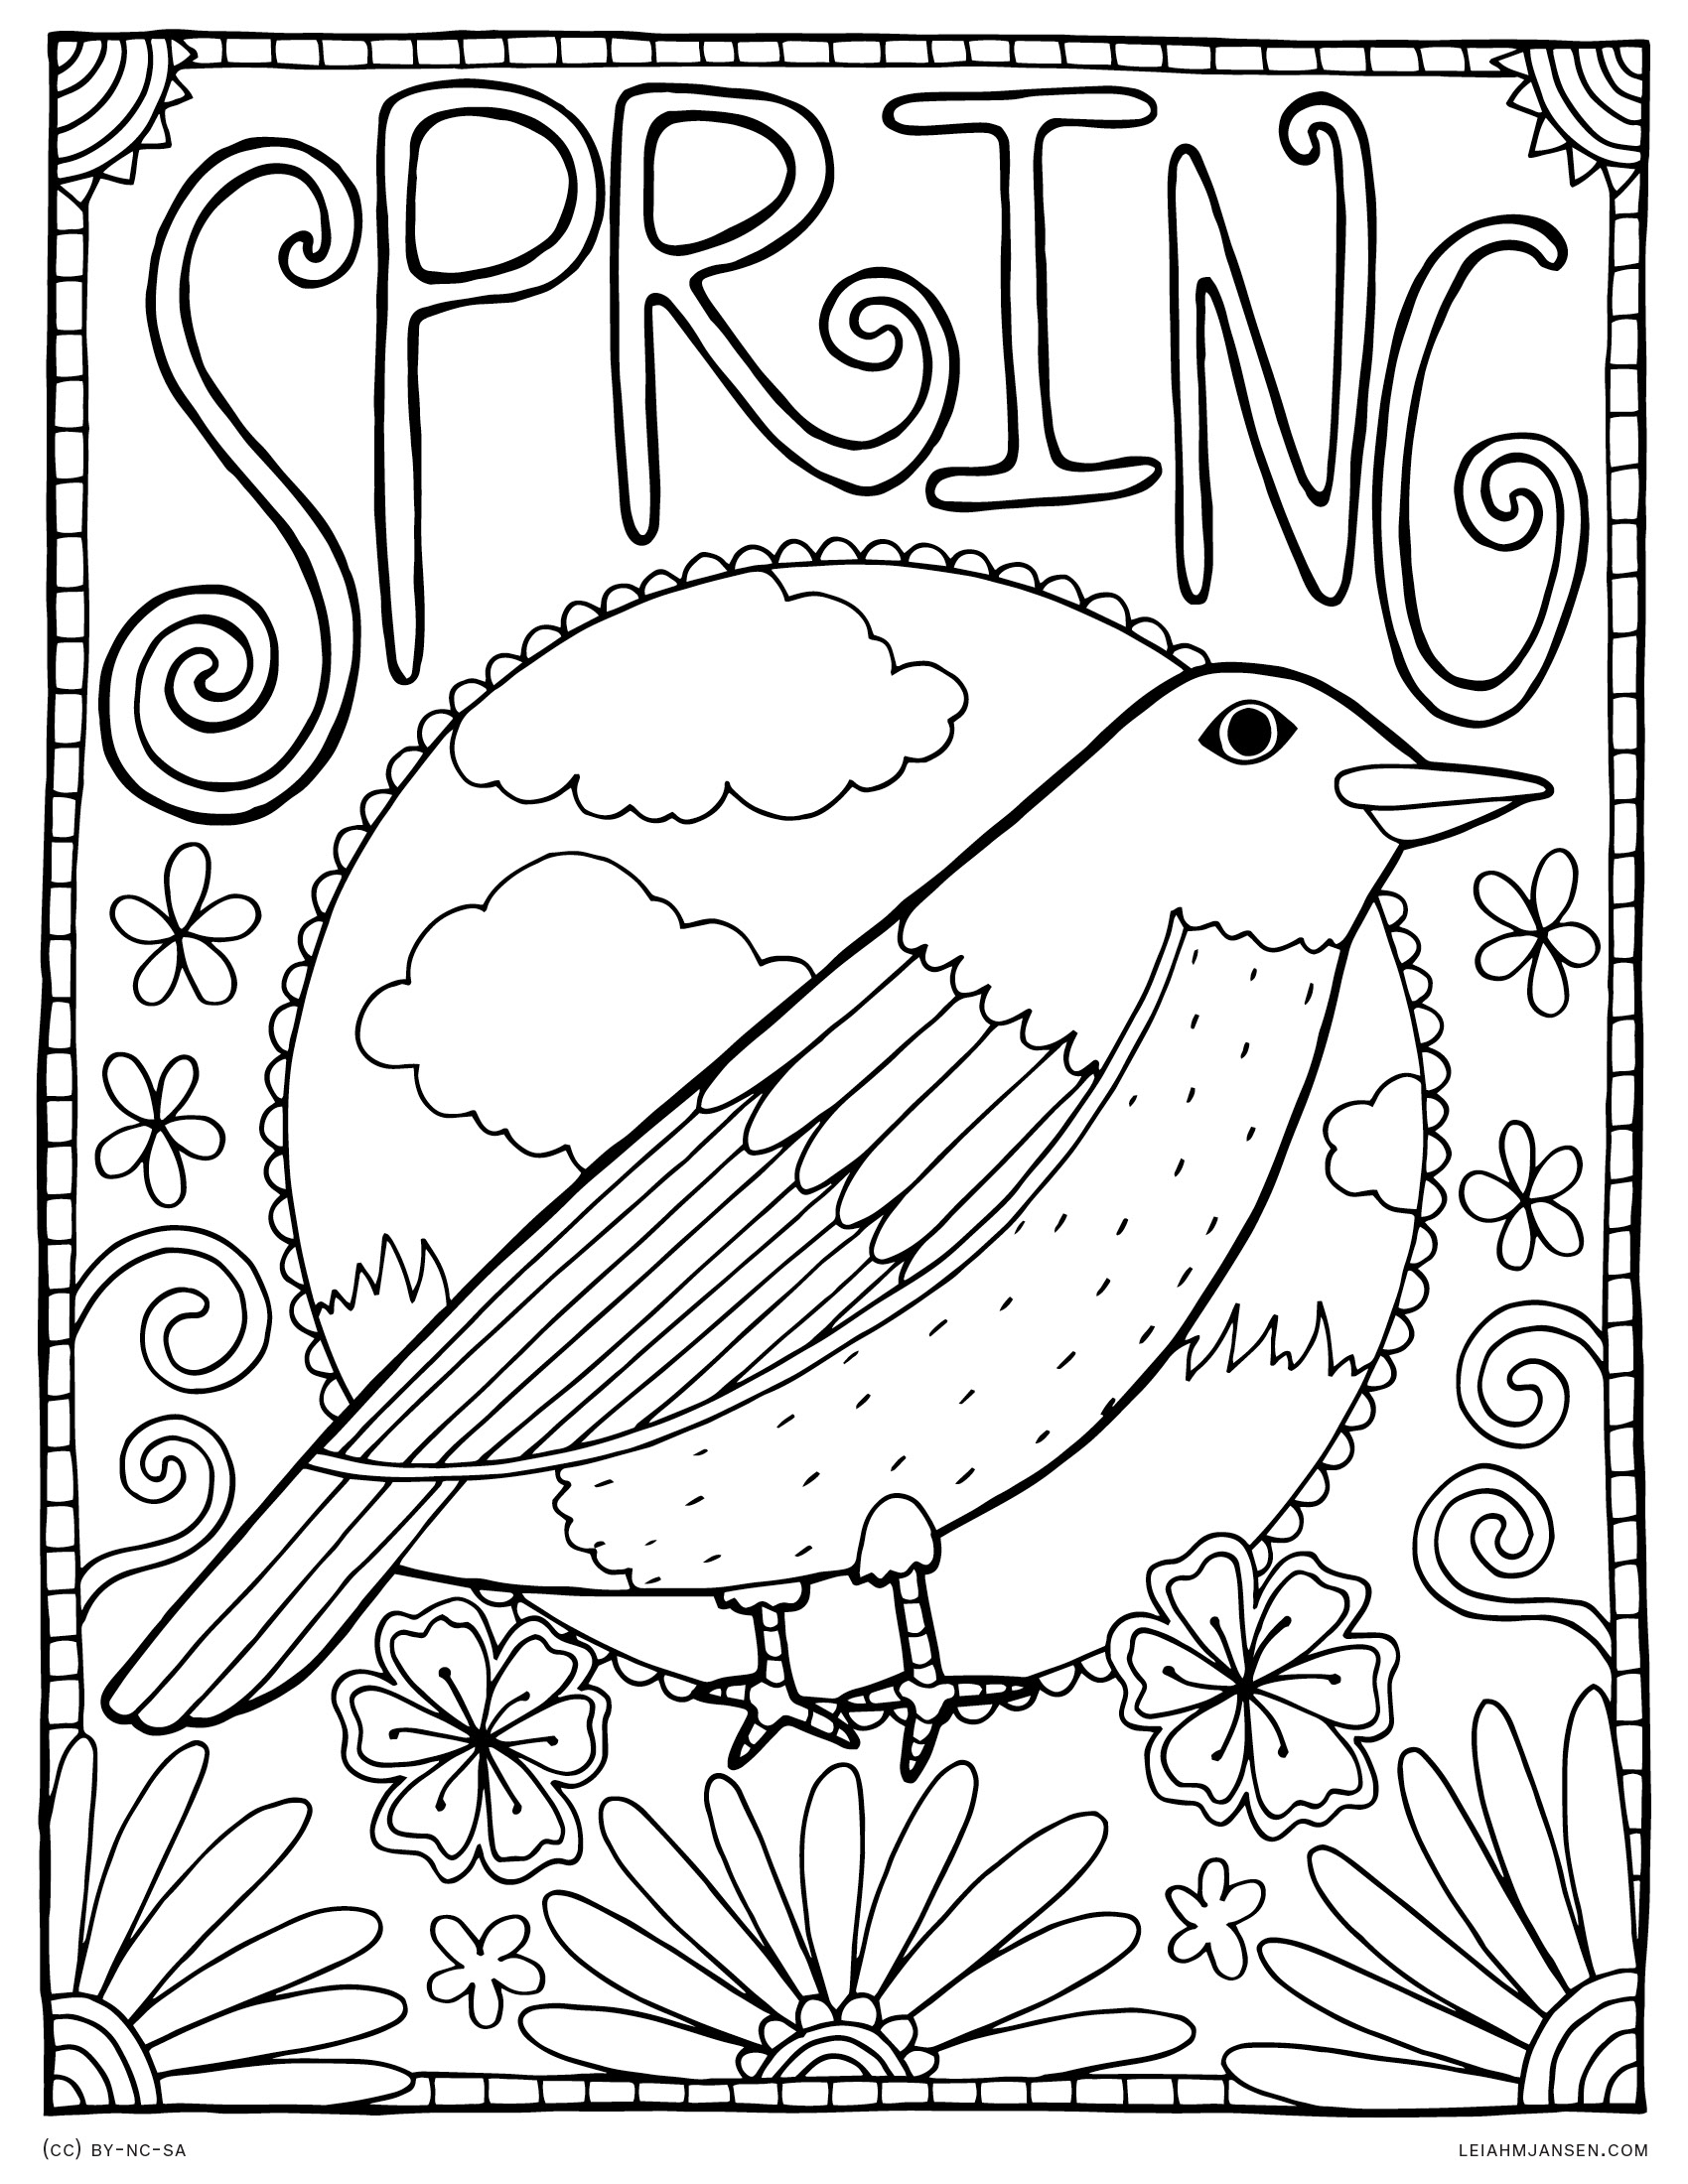 spring birds coloring pages bird coloring page coloring pages nature flower pages spring birds coloring